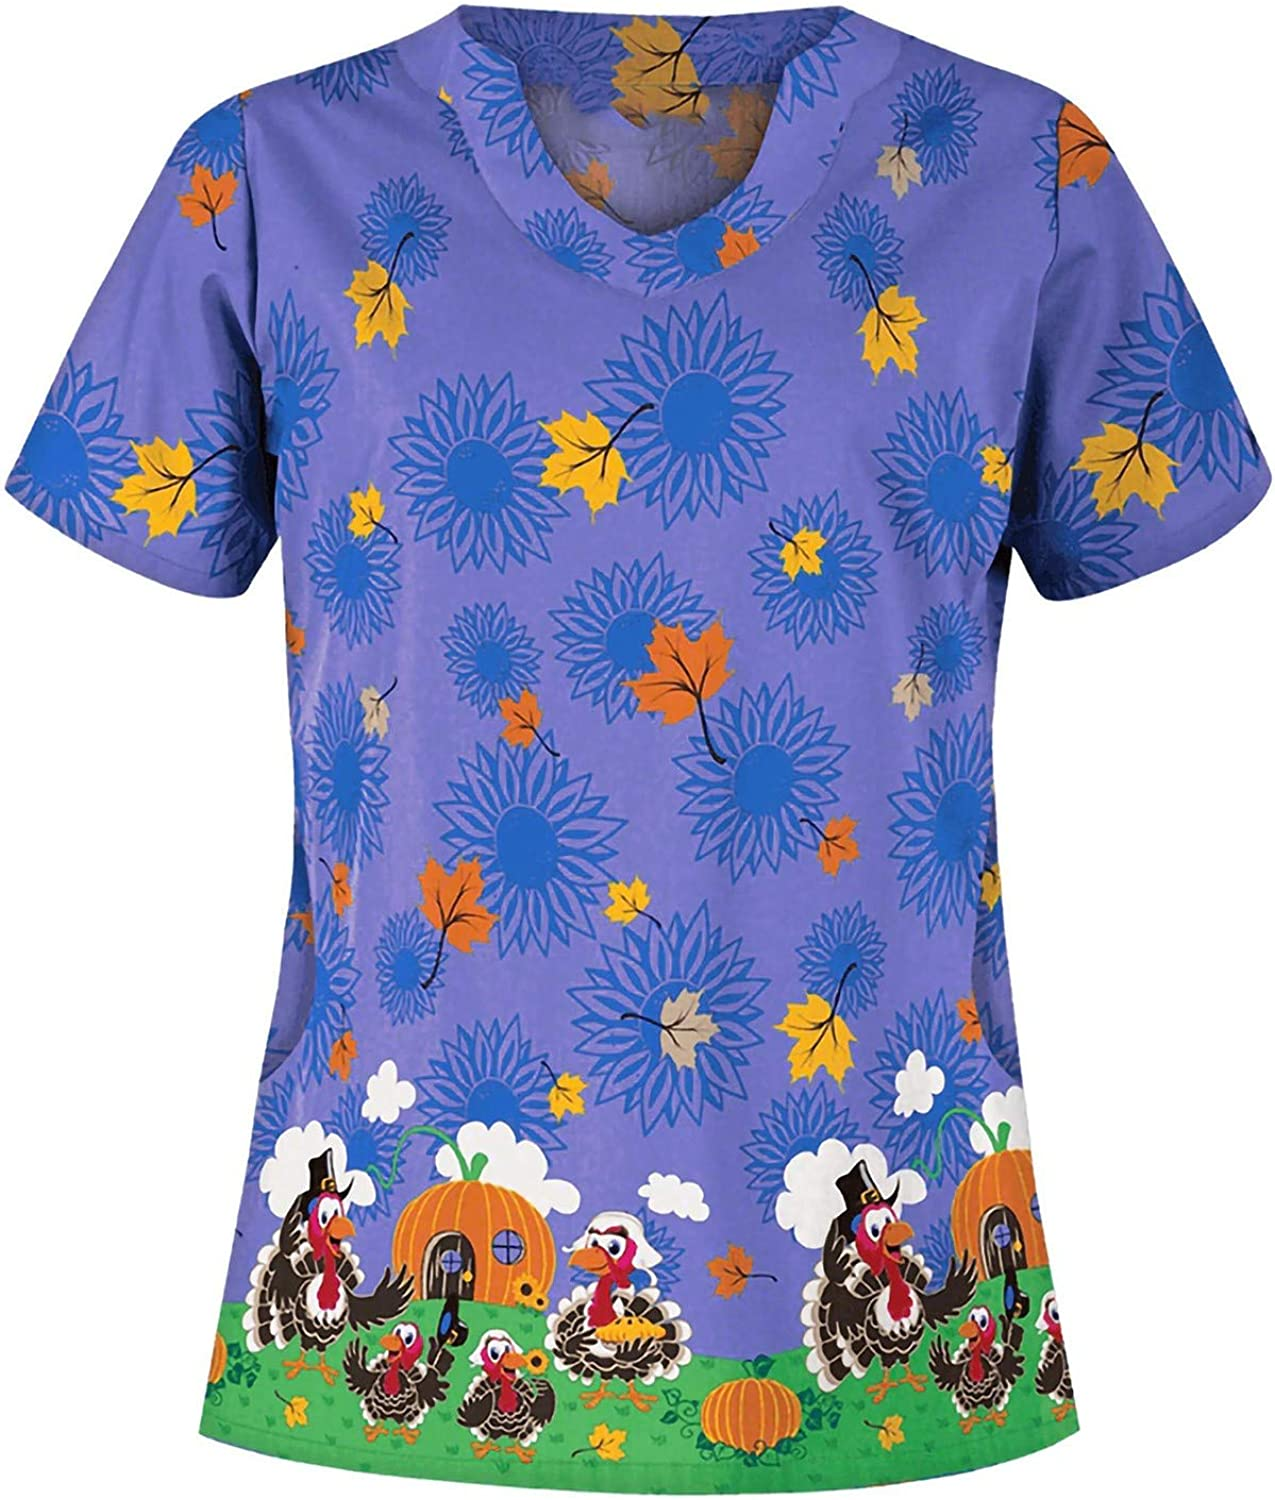 Fresno Mall Qinday Women's Holiday Tops Opening large release sale Cute Cartoon Print V-Neck Scrub_Top